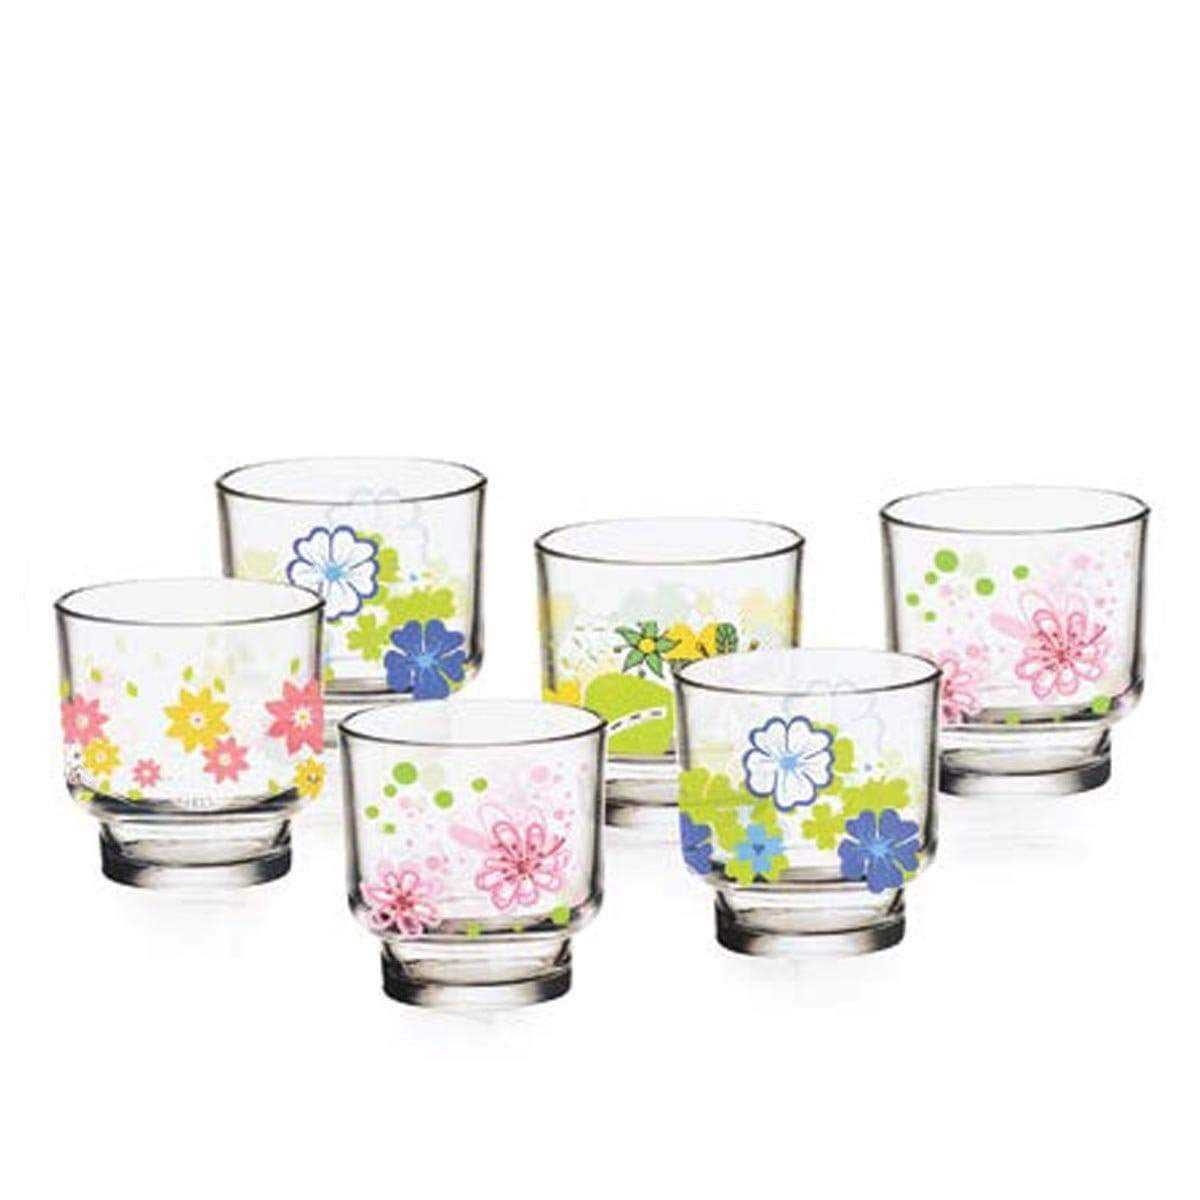 W8809/BH6 6pcs Top Point Tumbler Set